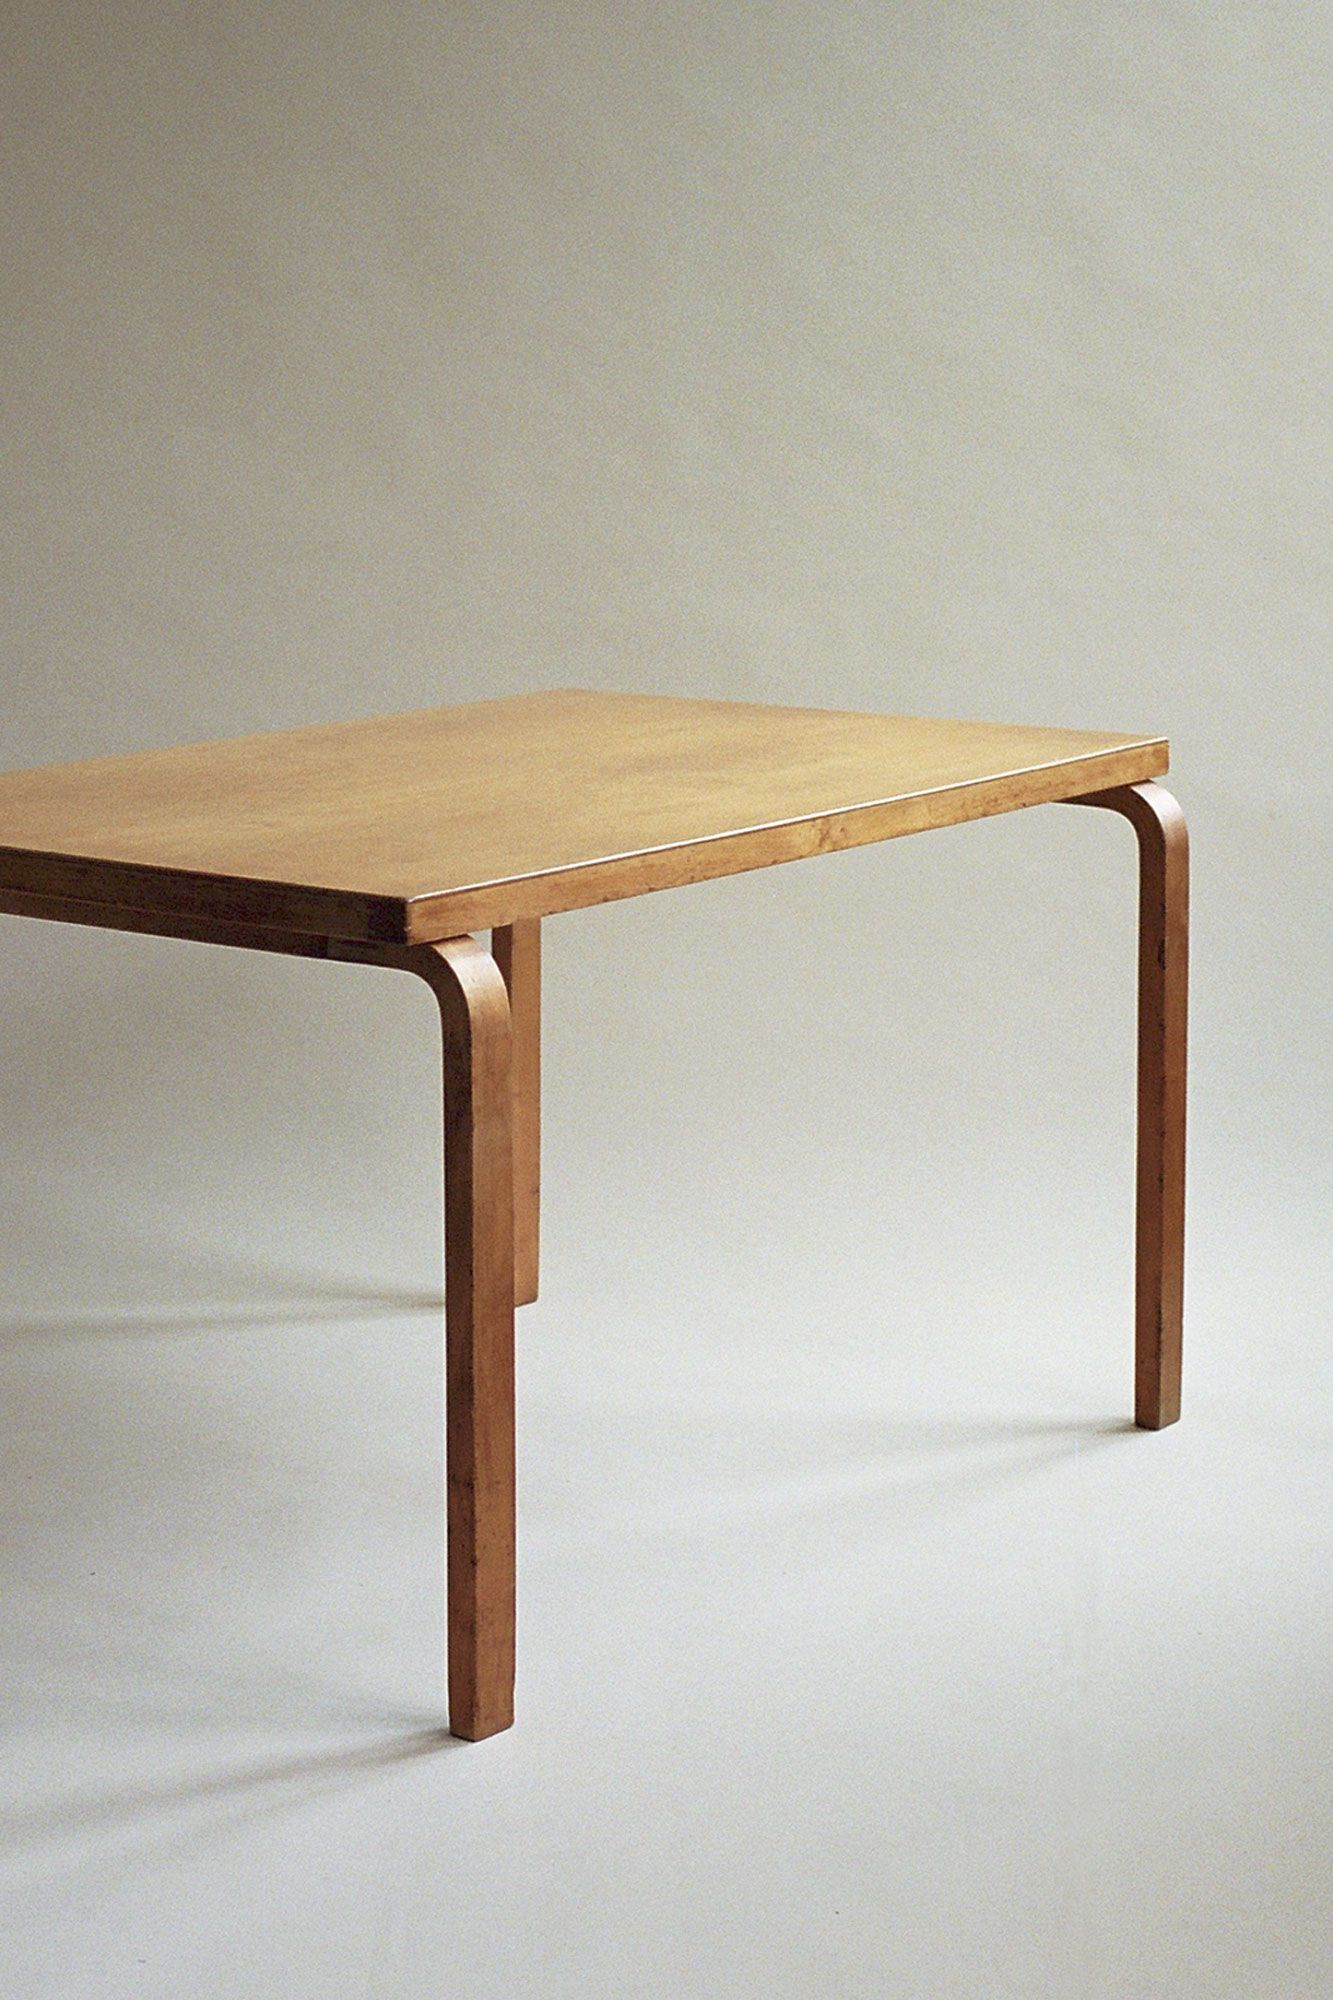 A Large Dining Table By Alvar Aalto Distributed By Finmar In The Mid 1930s To The Brit Scandinavian Dining Table Modern Retro Furniture Scandinavian Furniture